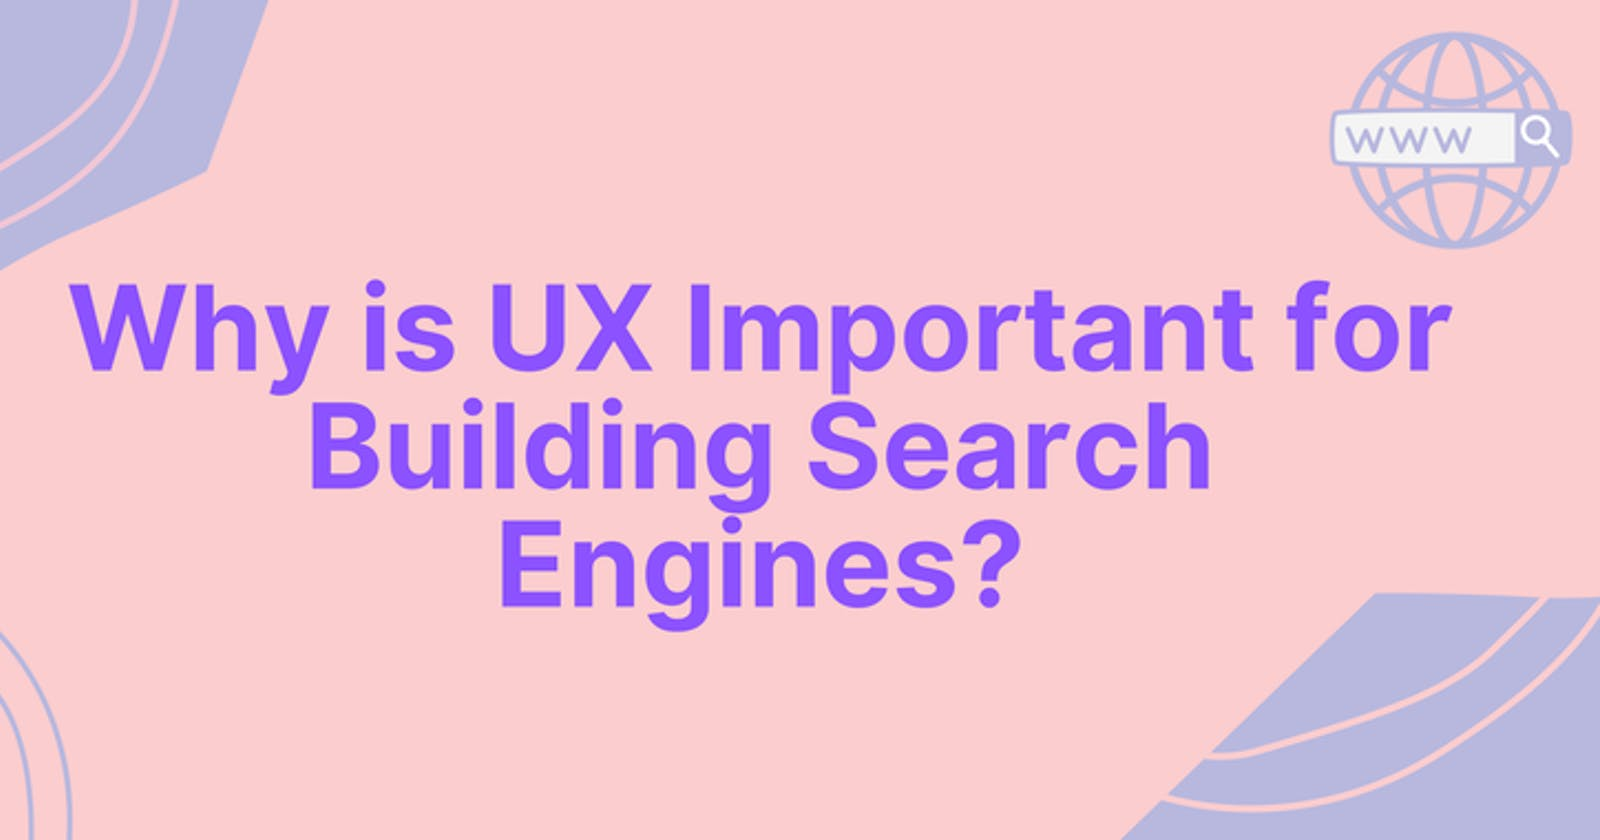 Importance of UX while building a Search Engine